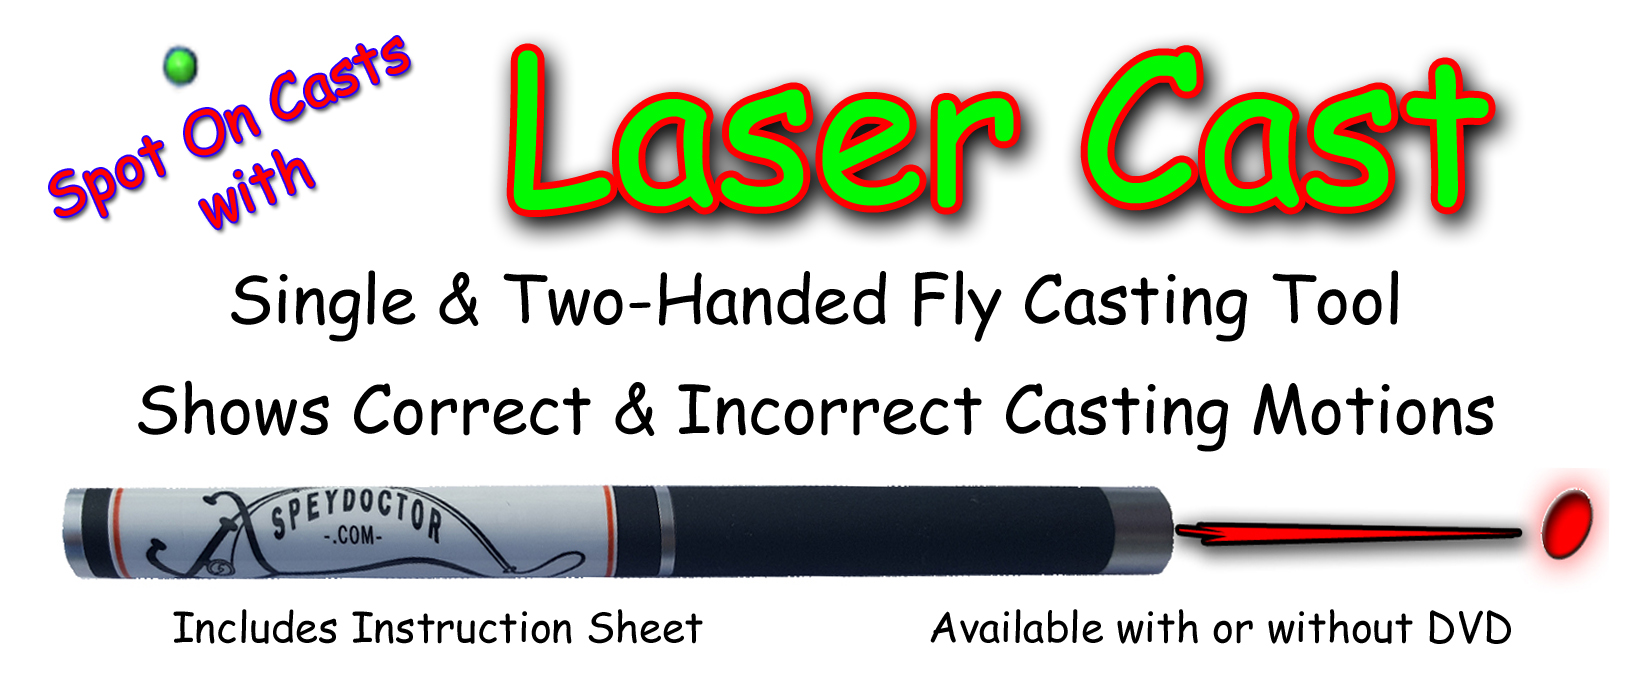 Laser Cast: Fly and Spey Casting Tool